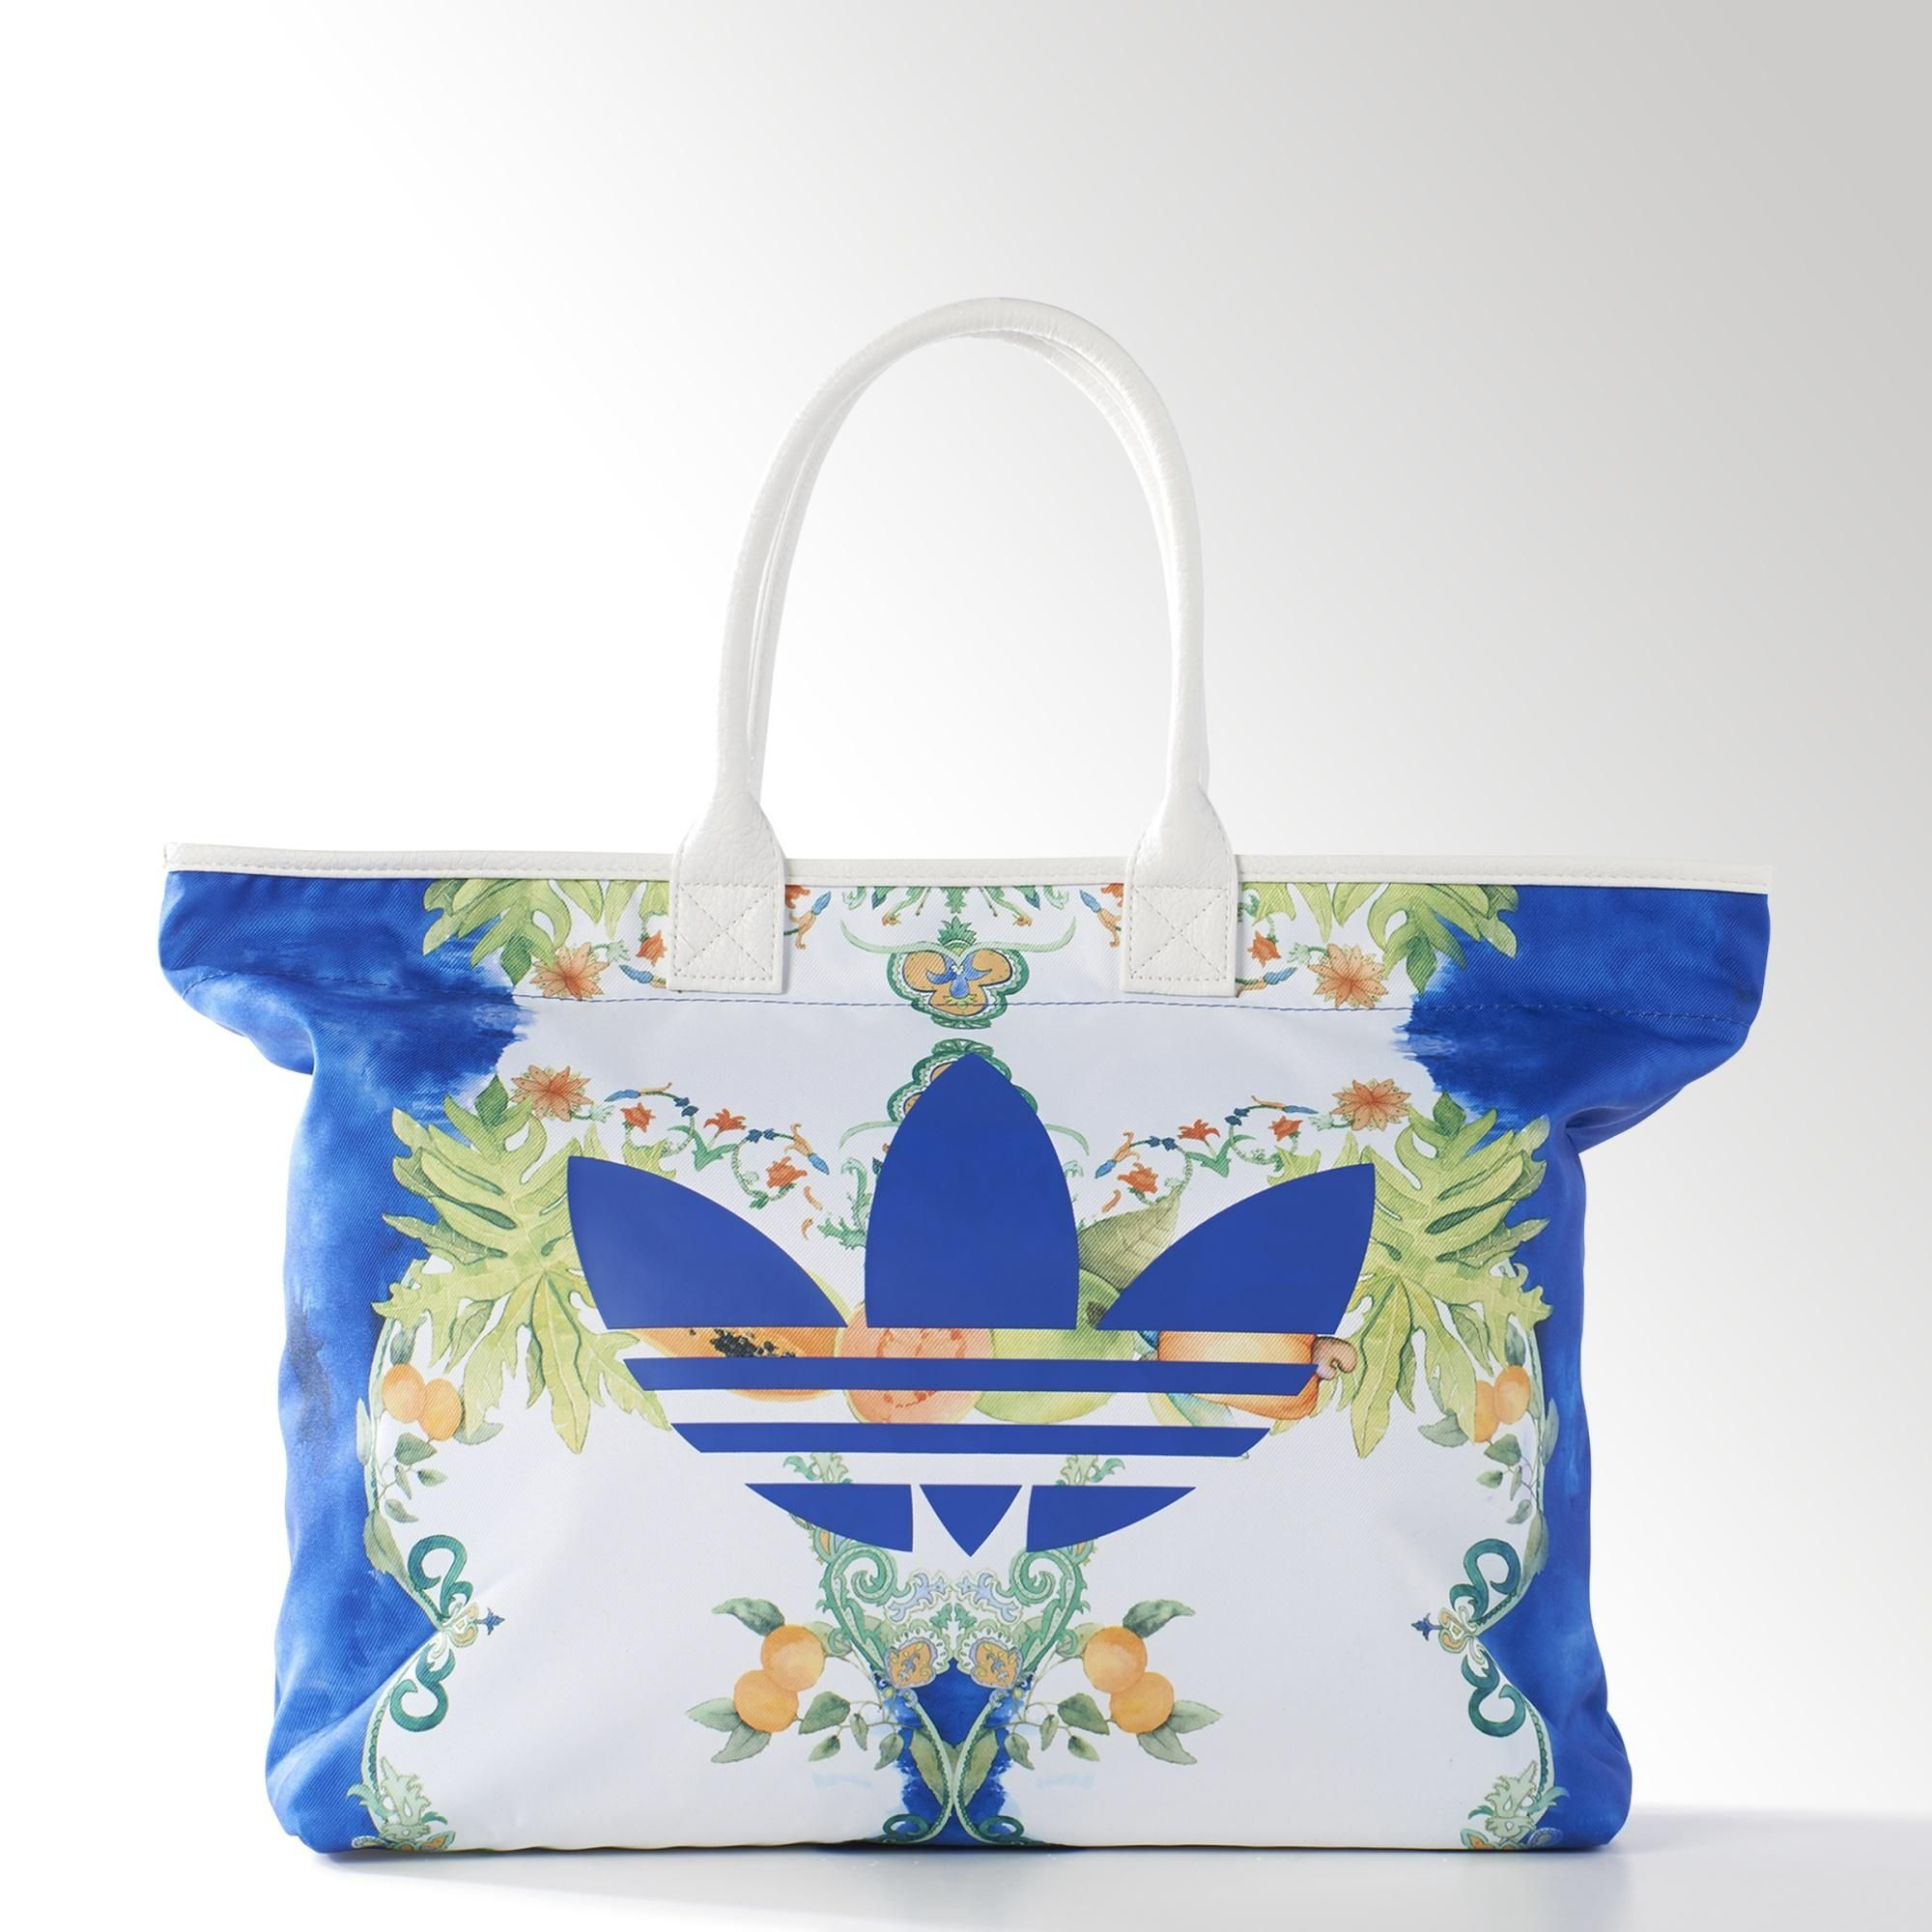 9138f7357026 This women s shopper bag puts the Trefoil against a backdrop of delectable  fruits and flowers